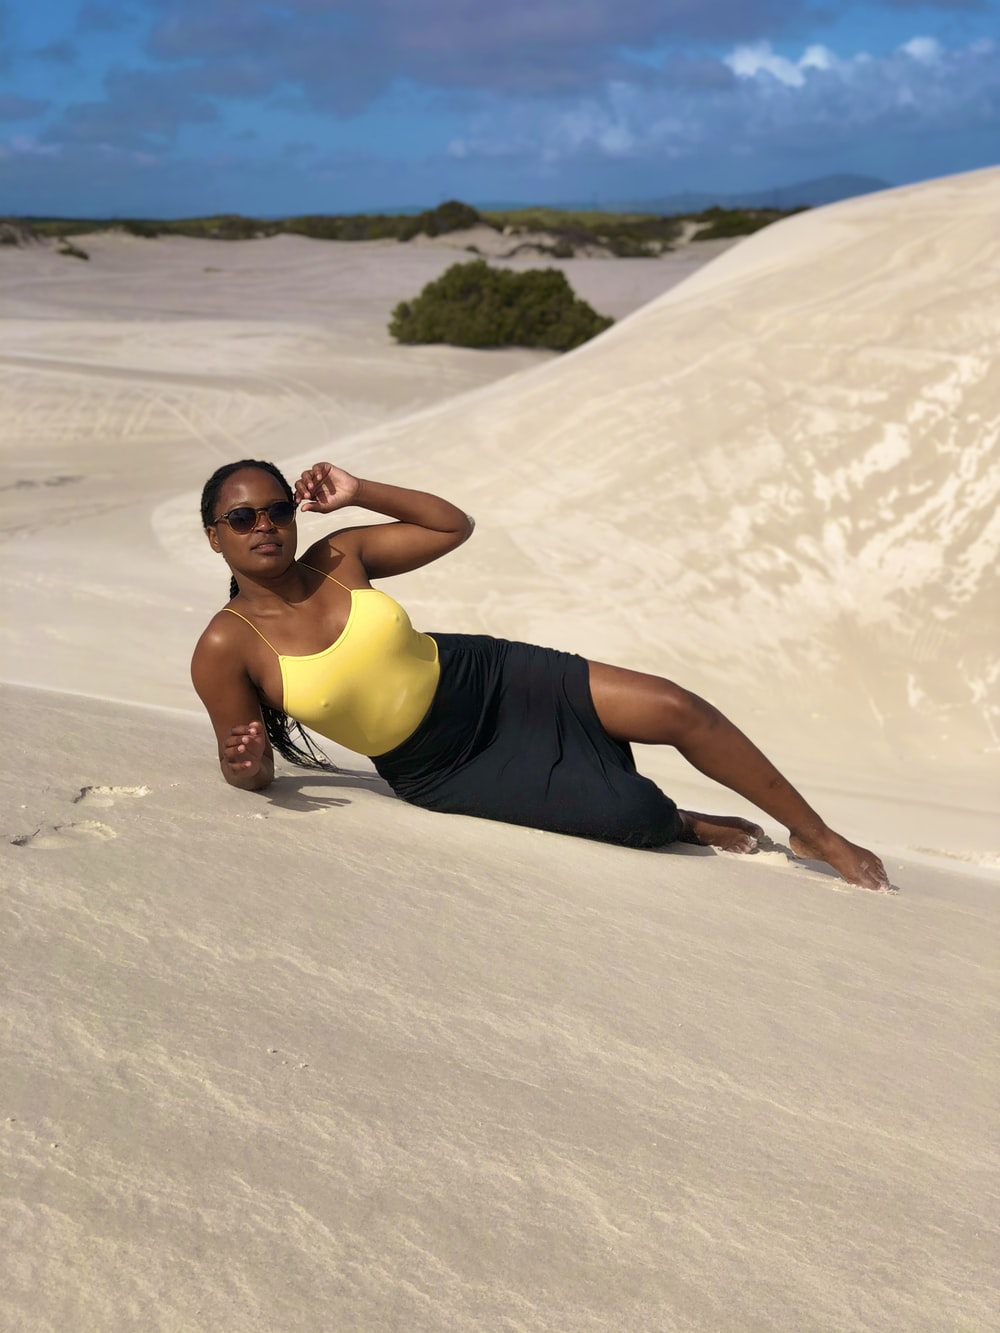 woman in yellow tank top and black shorts lying on white sand during daytime